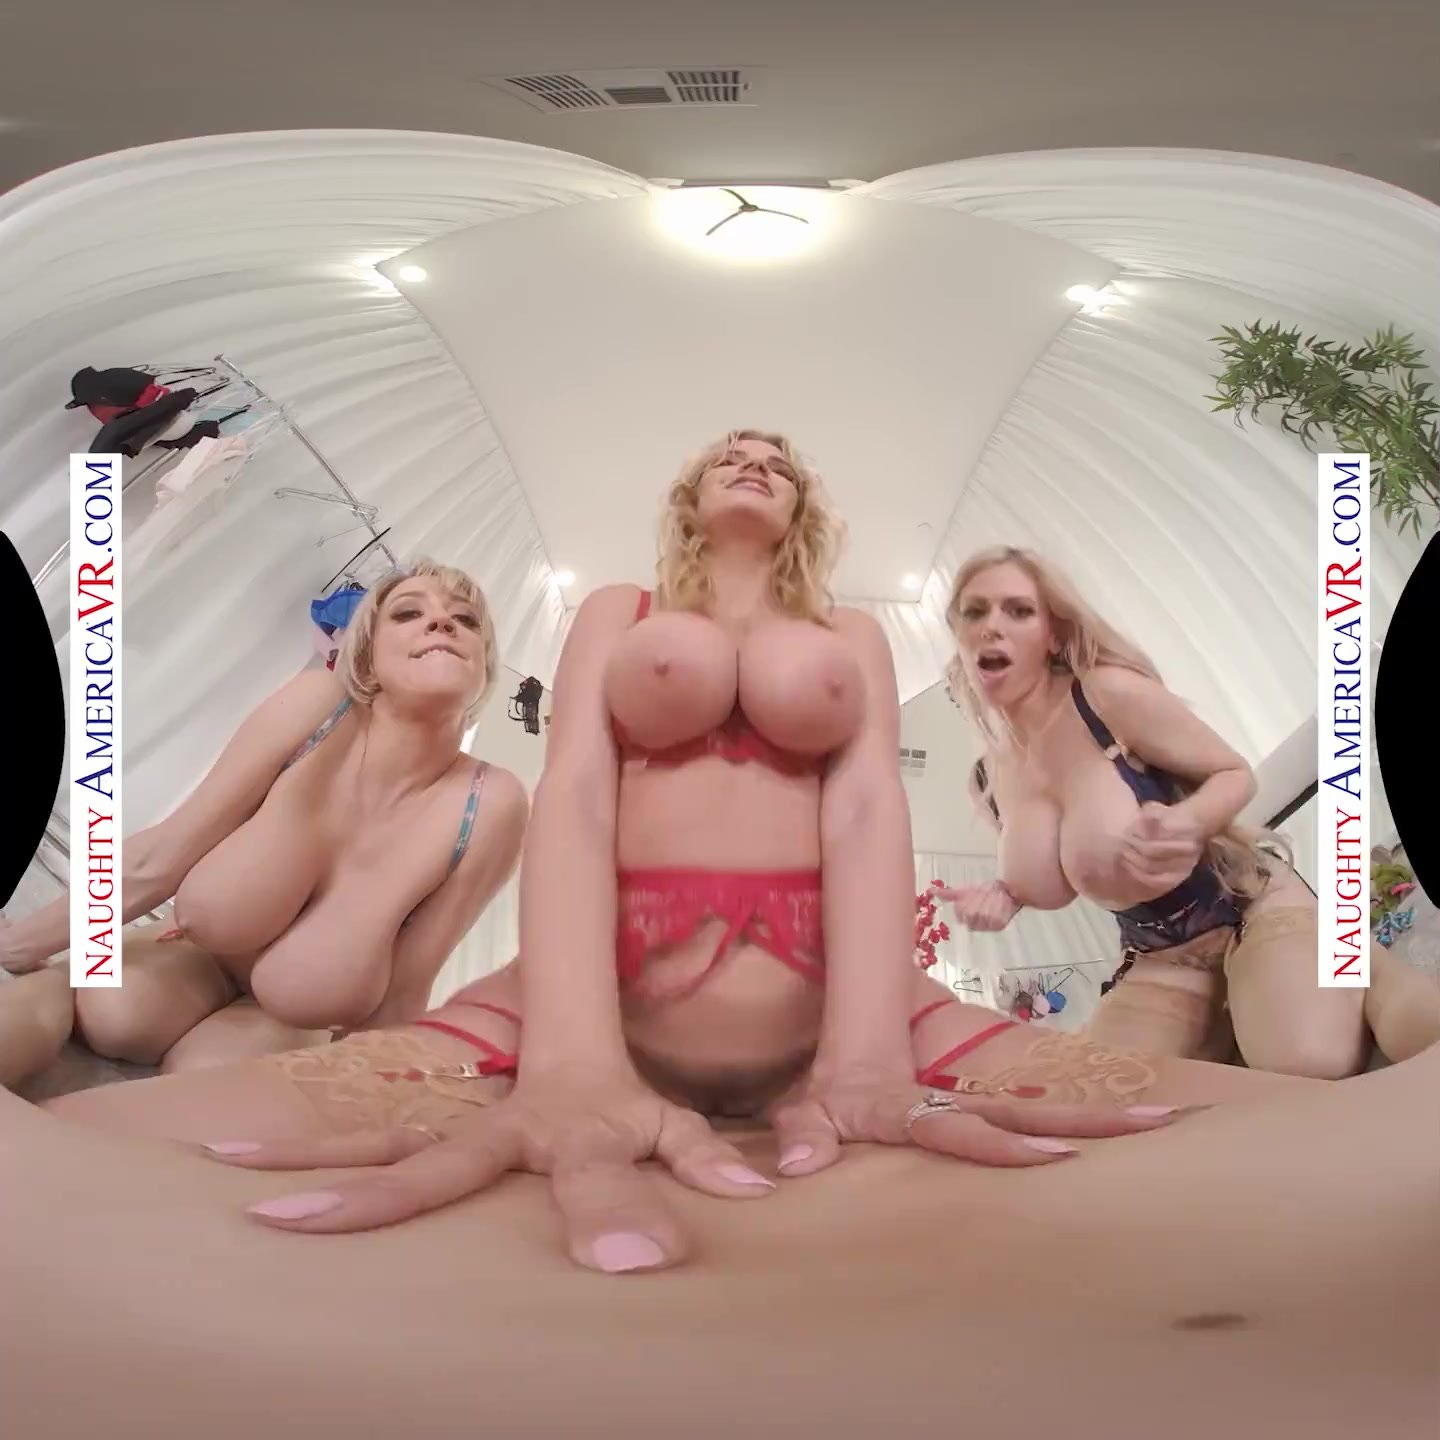 Naughty America - Casca Akashova Dee Williams and Rachael Cavalli undress only for your eyes